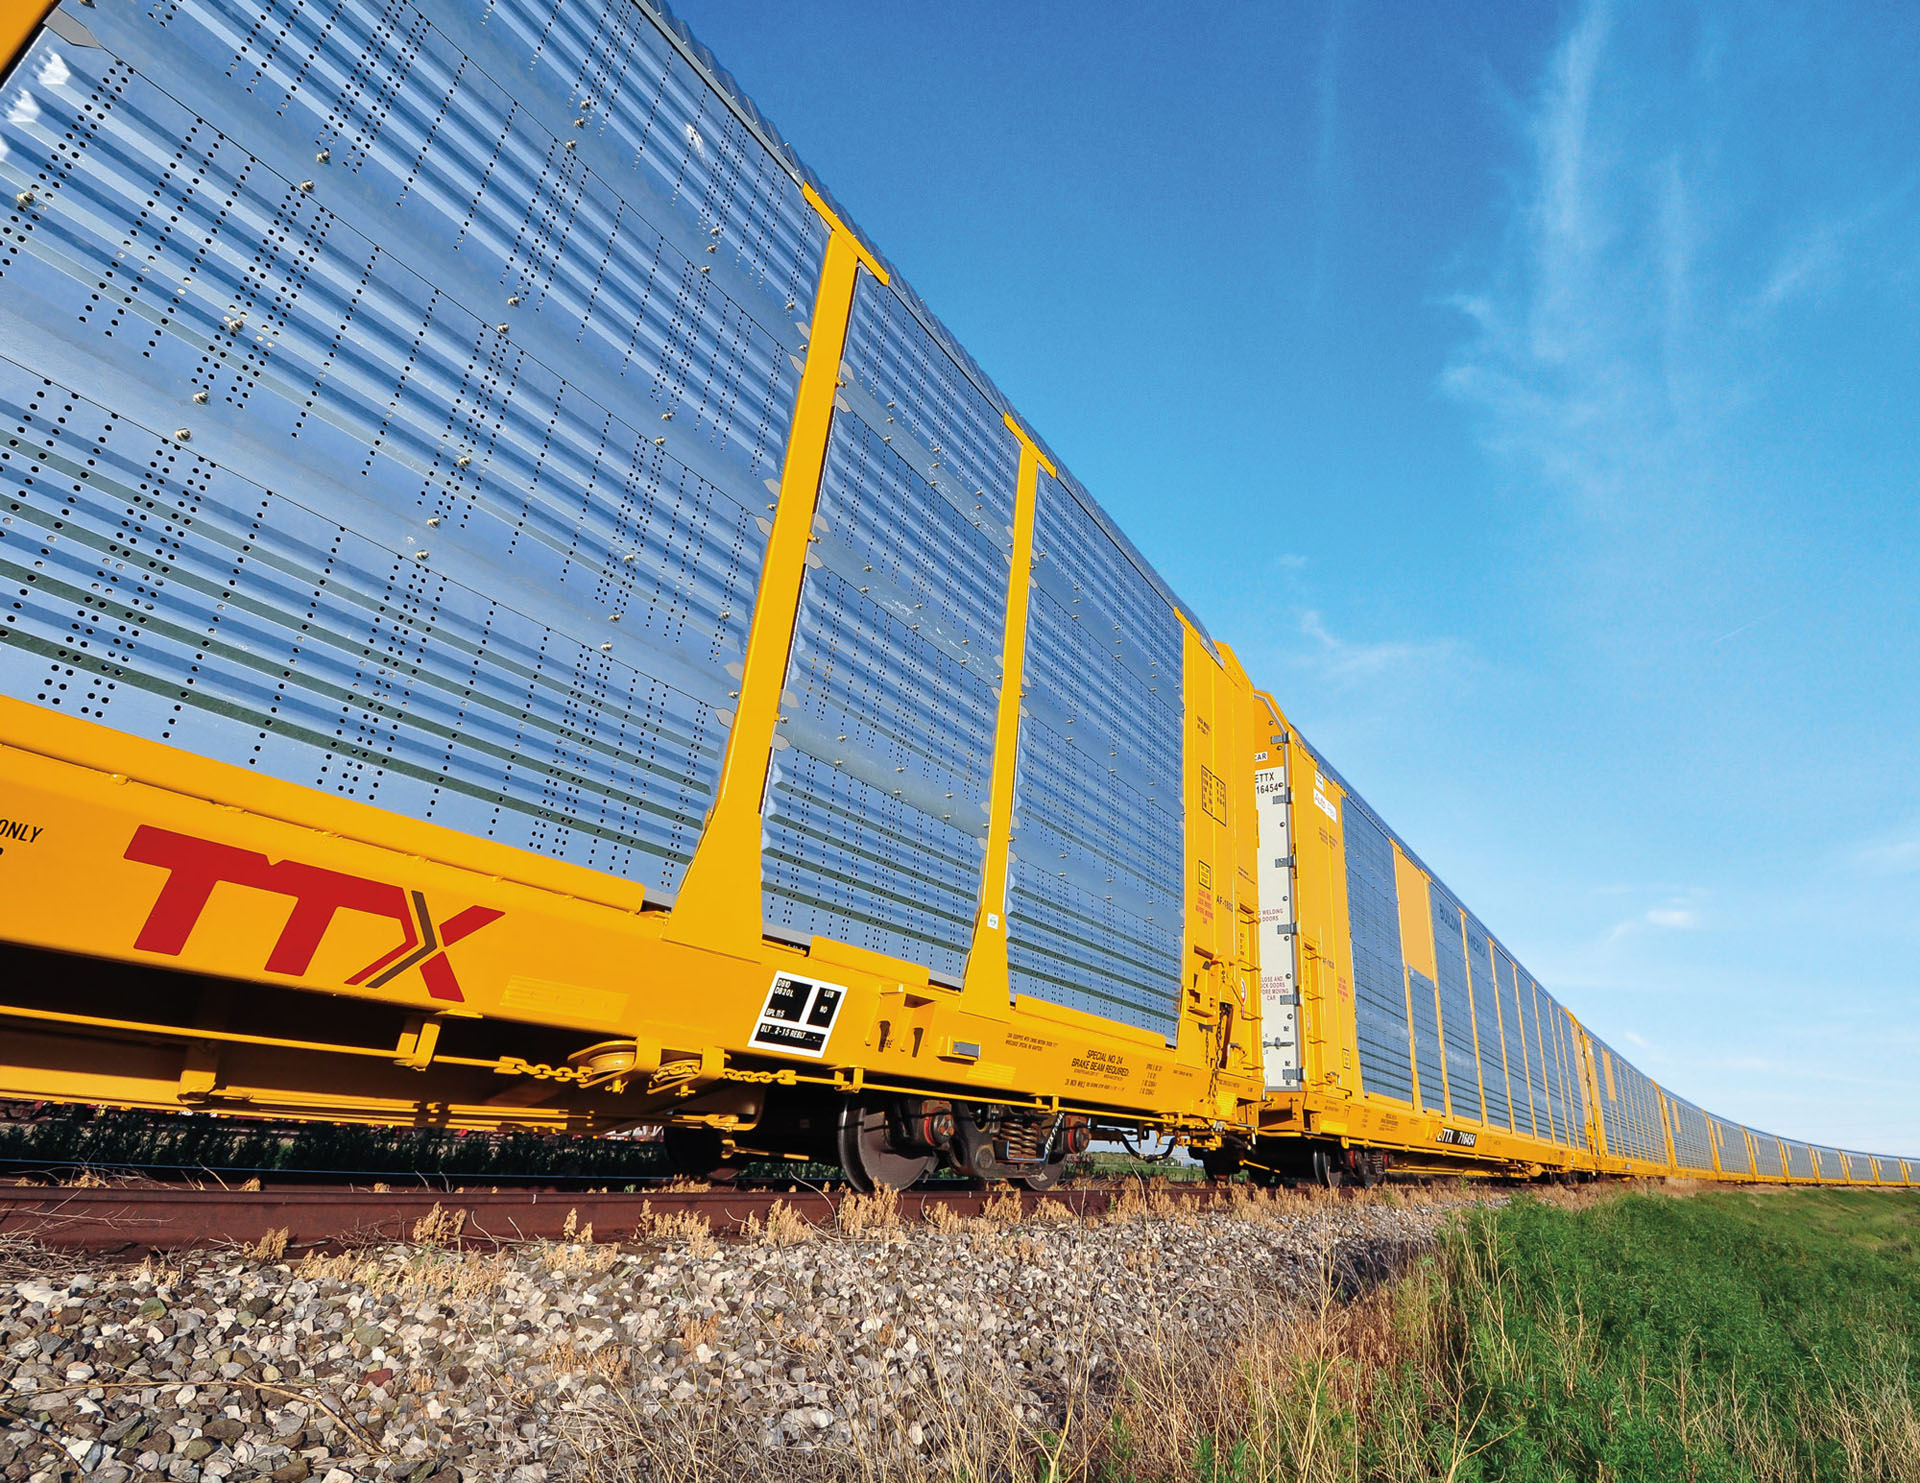 TTX - RAILCAR POOLING EXPERTS